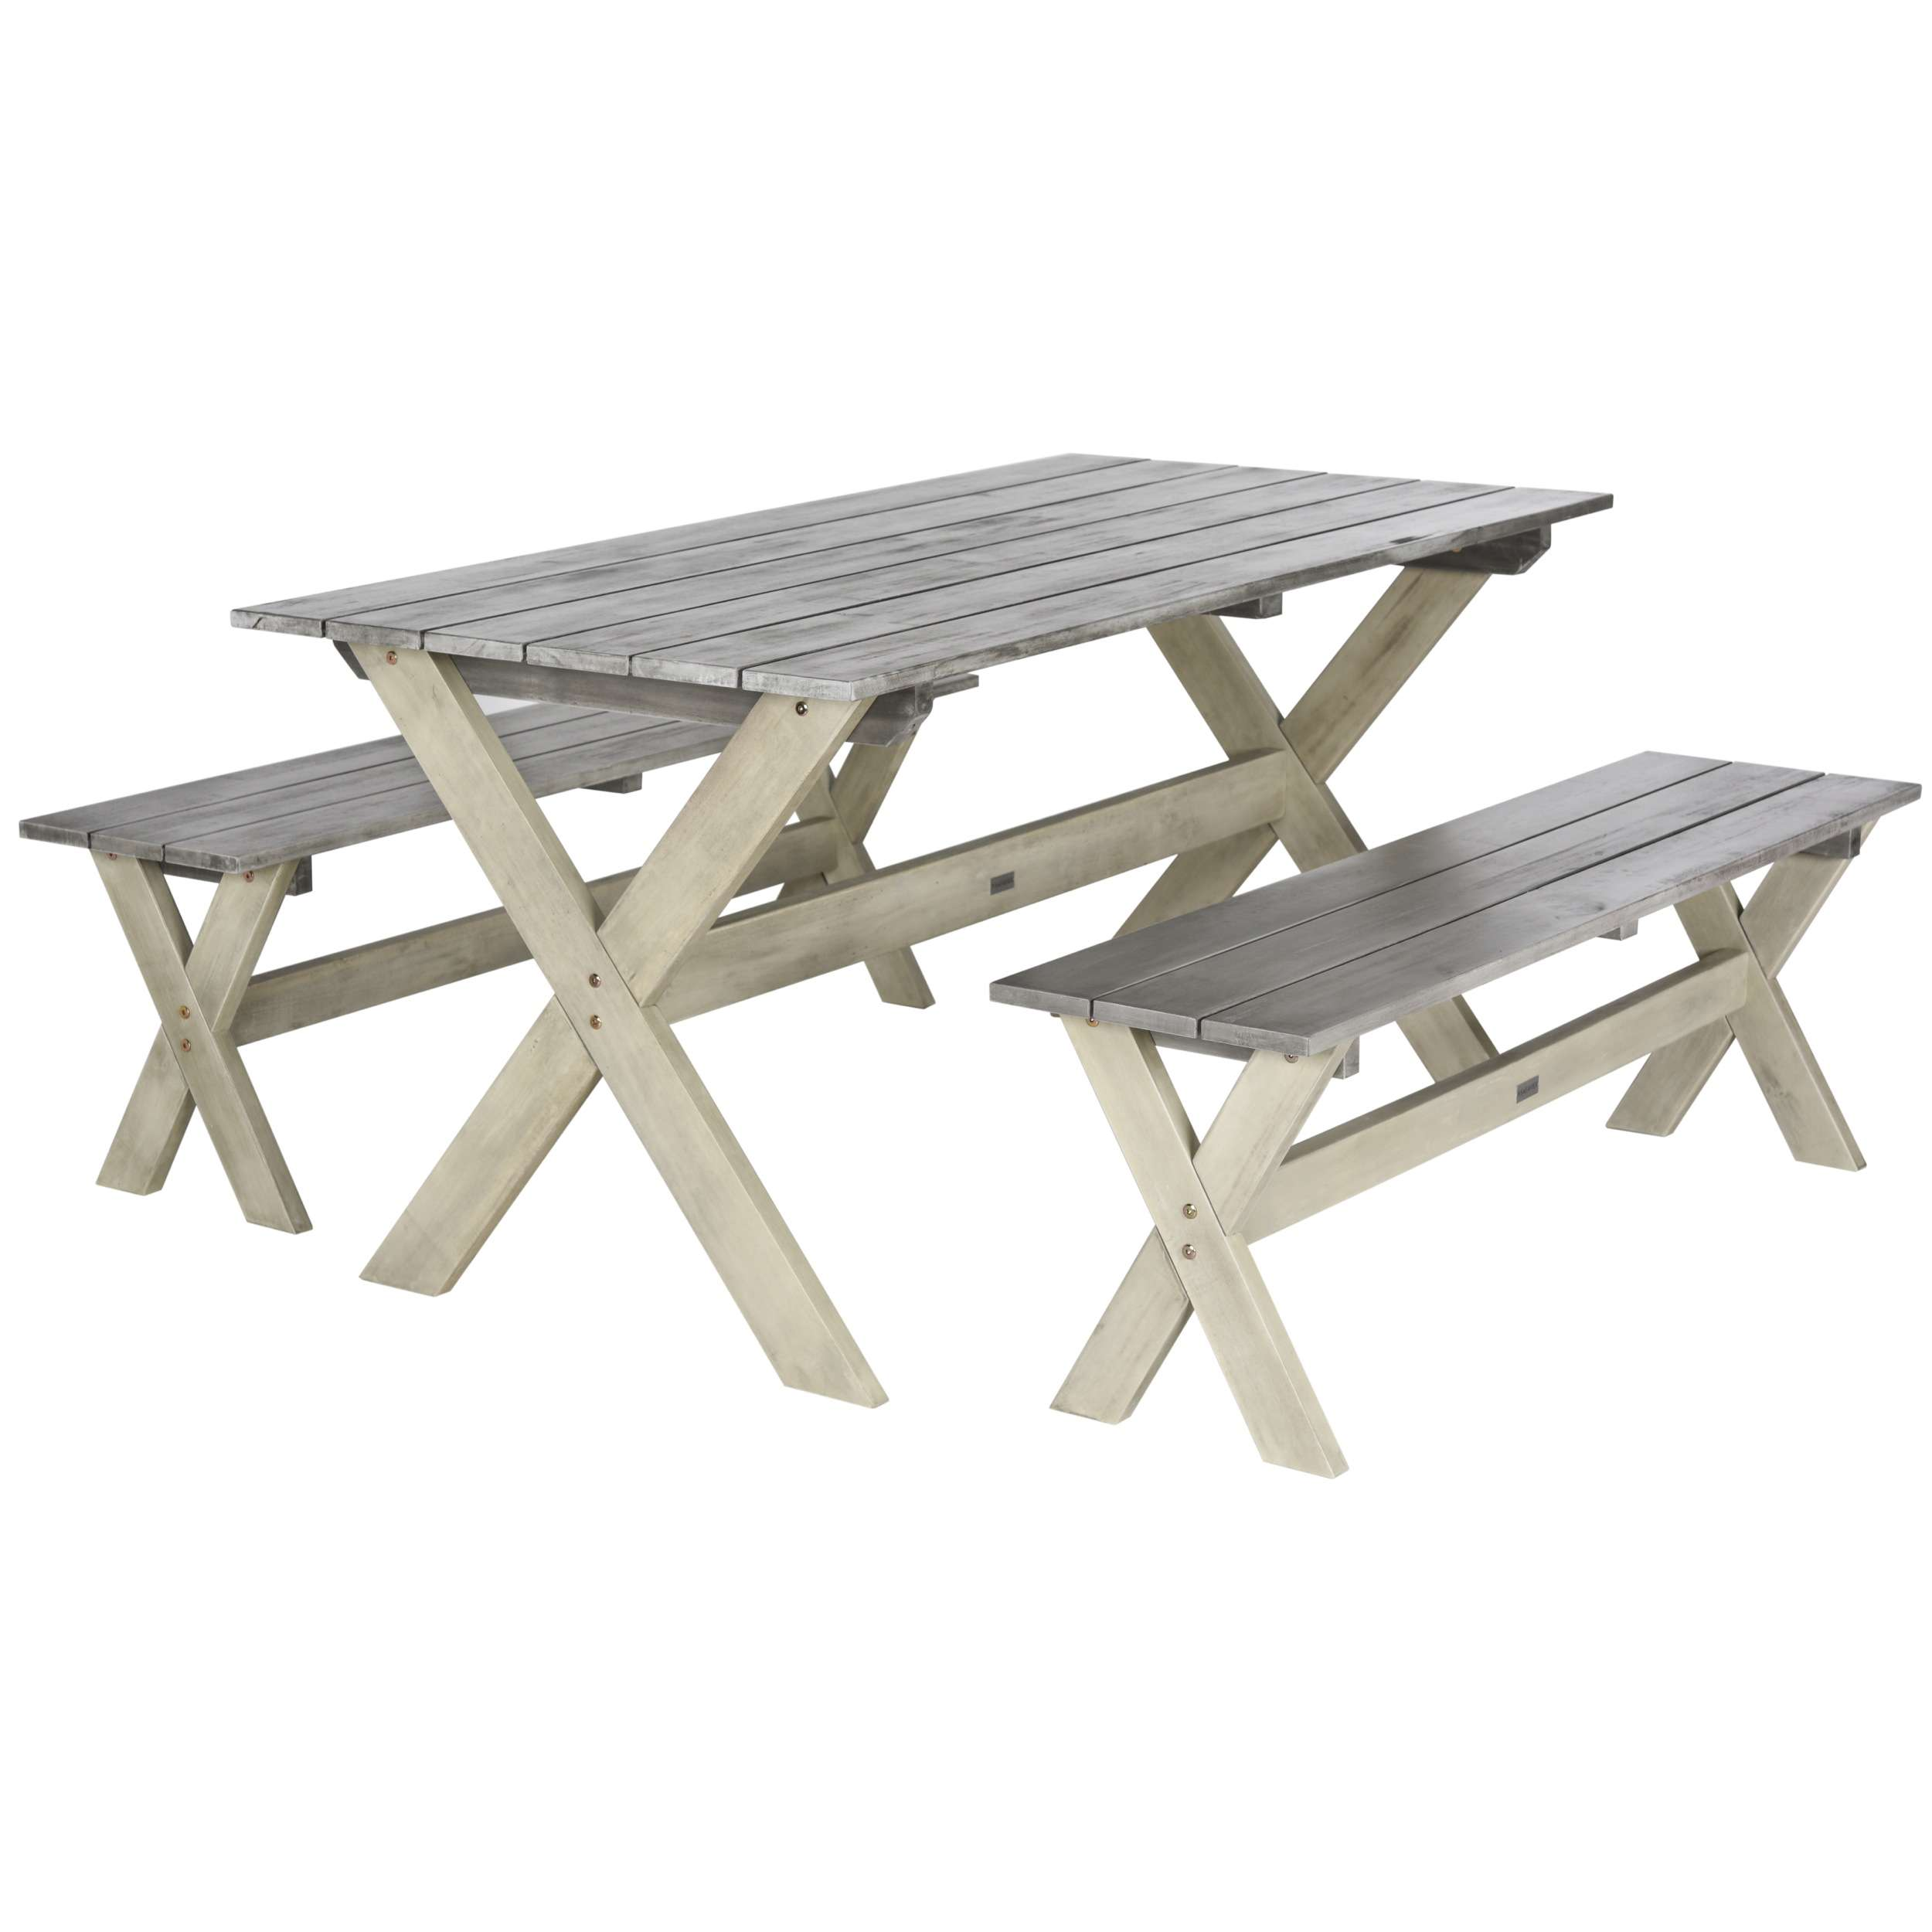 Groovy Safavieh Pat7021A Gmtry Best Dining Table And Chair Ideas Images Gmtryco